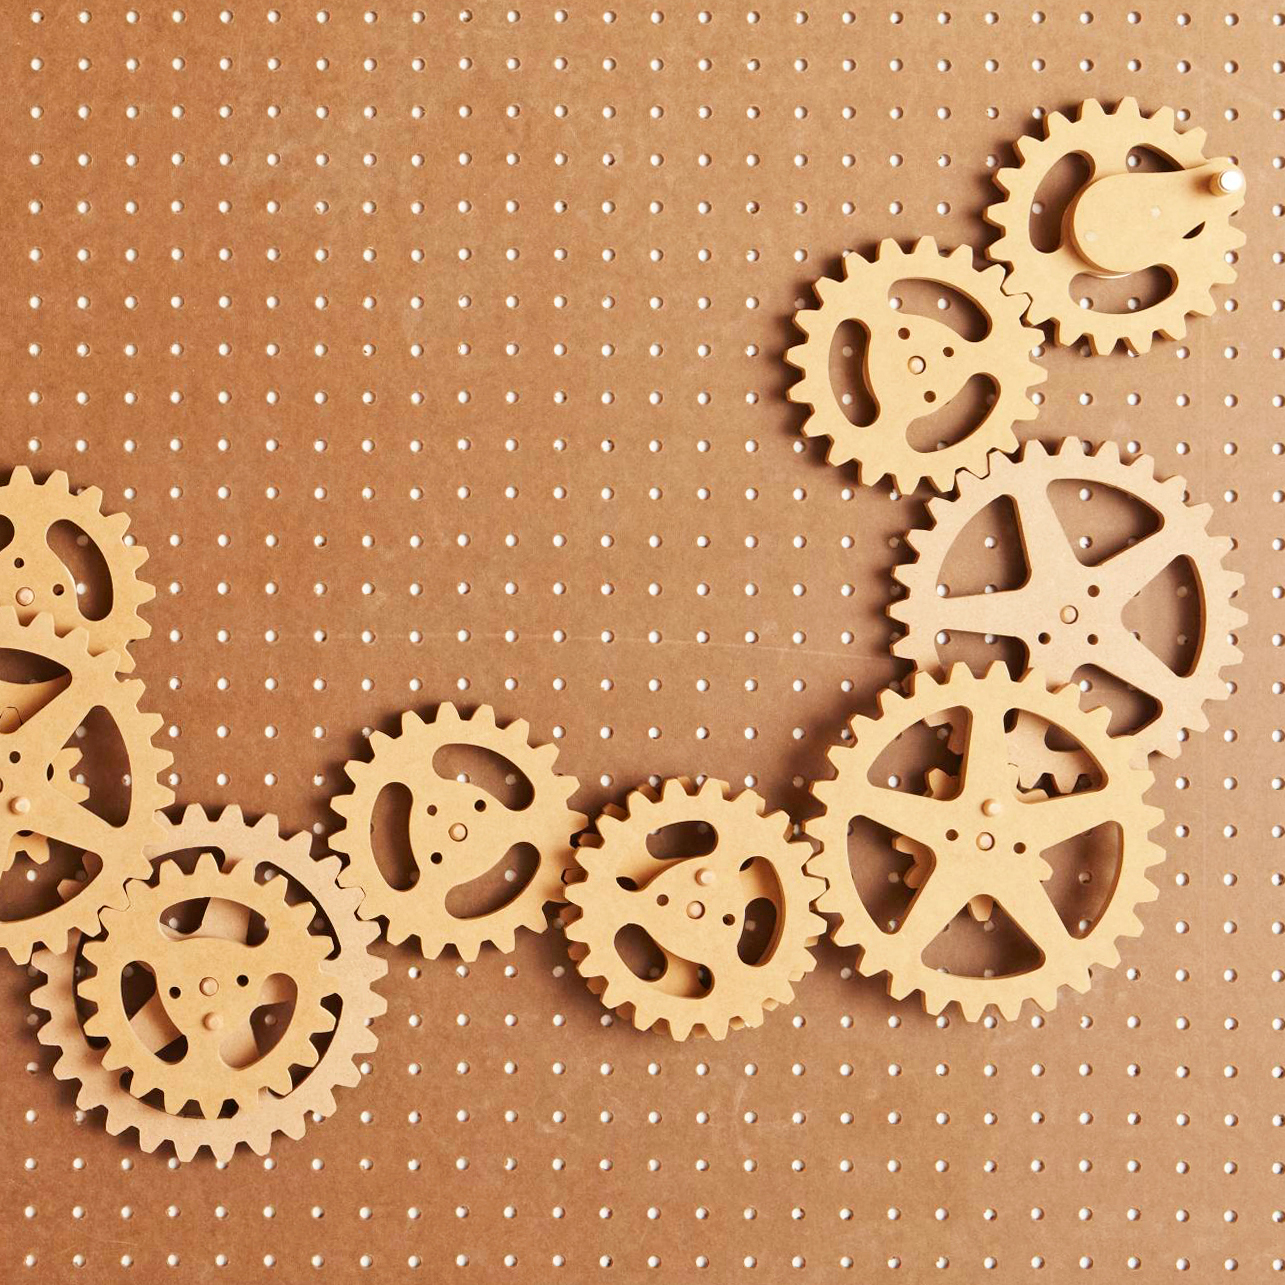 Scrollsawn Gears Woodworking Plan from WOOD Magazine